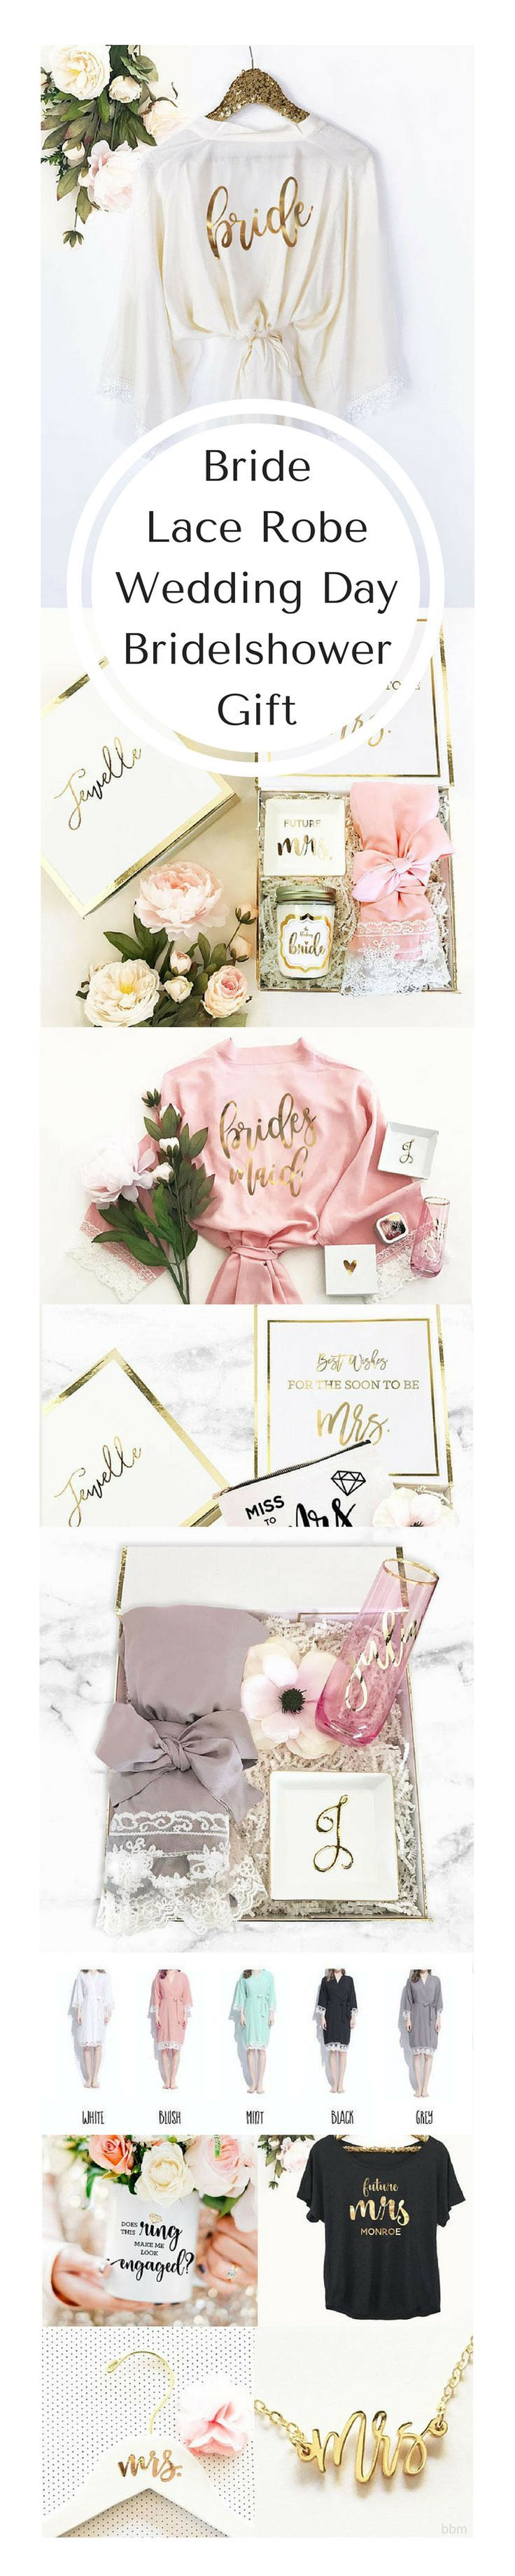 So Pretty! from Etsy - Bride Robes with Lace make the perfect wedding day or bridal shower gift for the bride to be! These delicate lace trimmed robes come with a gold foil title on the backside. Comes with a matching belt for the outside. #bridetobe #weddingday #ad #bbmaff #weddingpreparation #weddingplanning #bridalshower #gettingmarried #gettingdressed #lace #robe